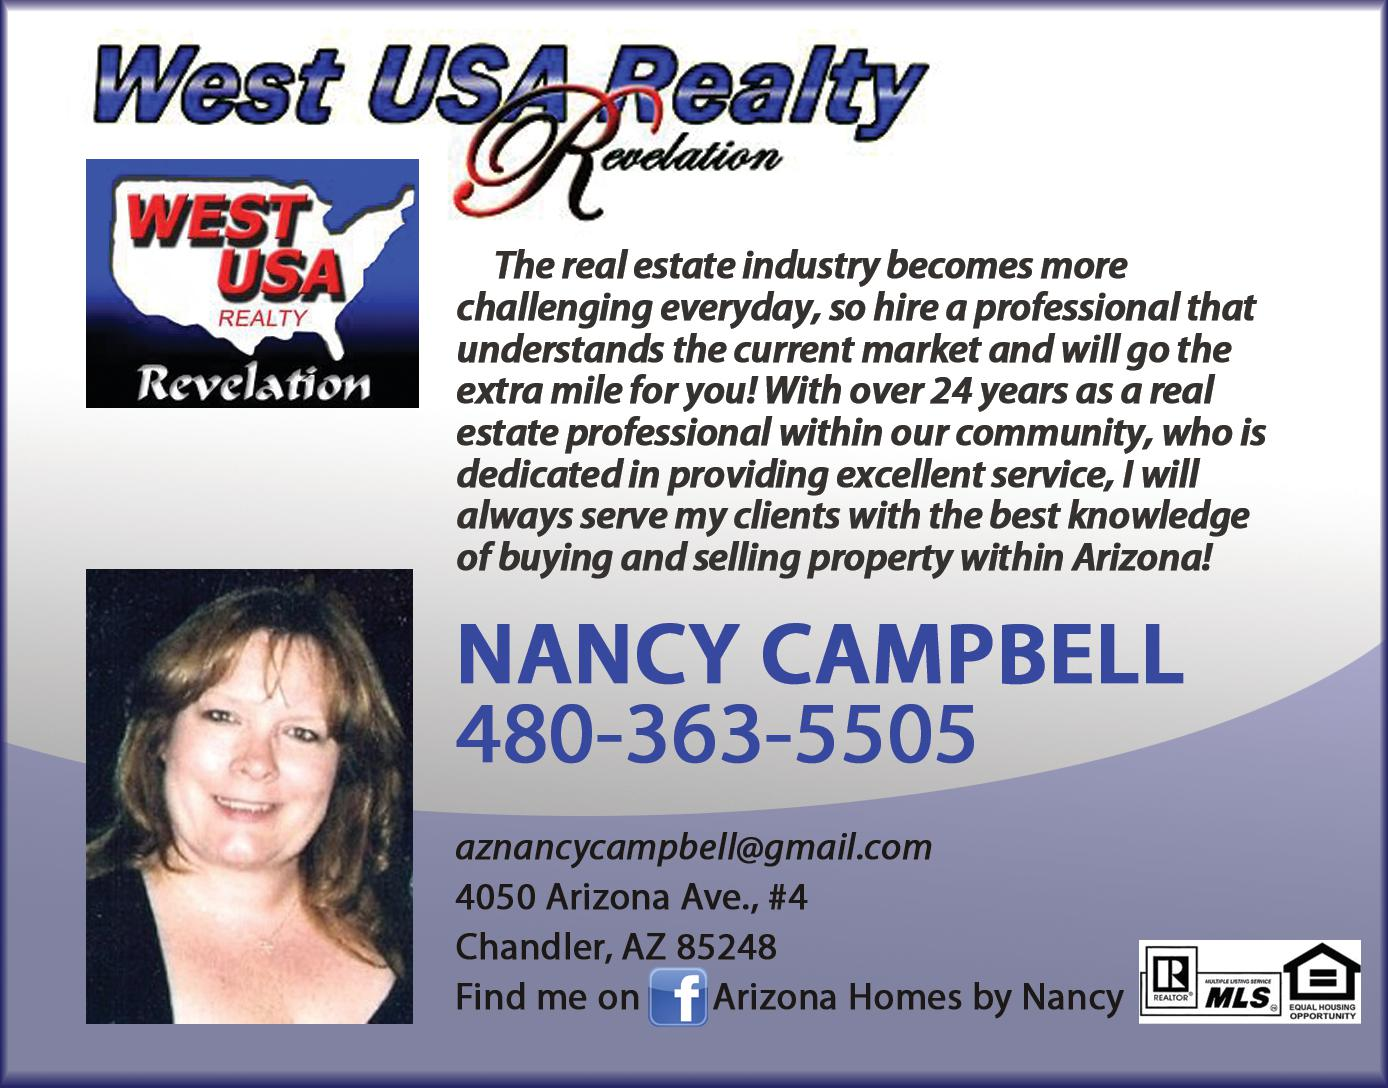 West USA Realty Revelation - Campbell